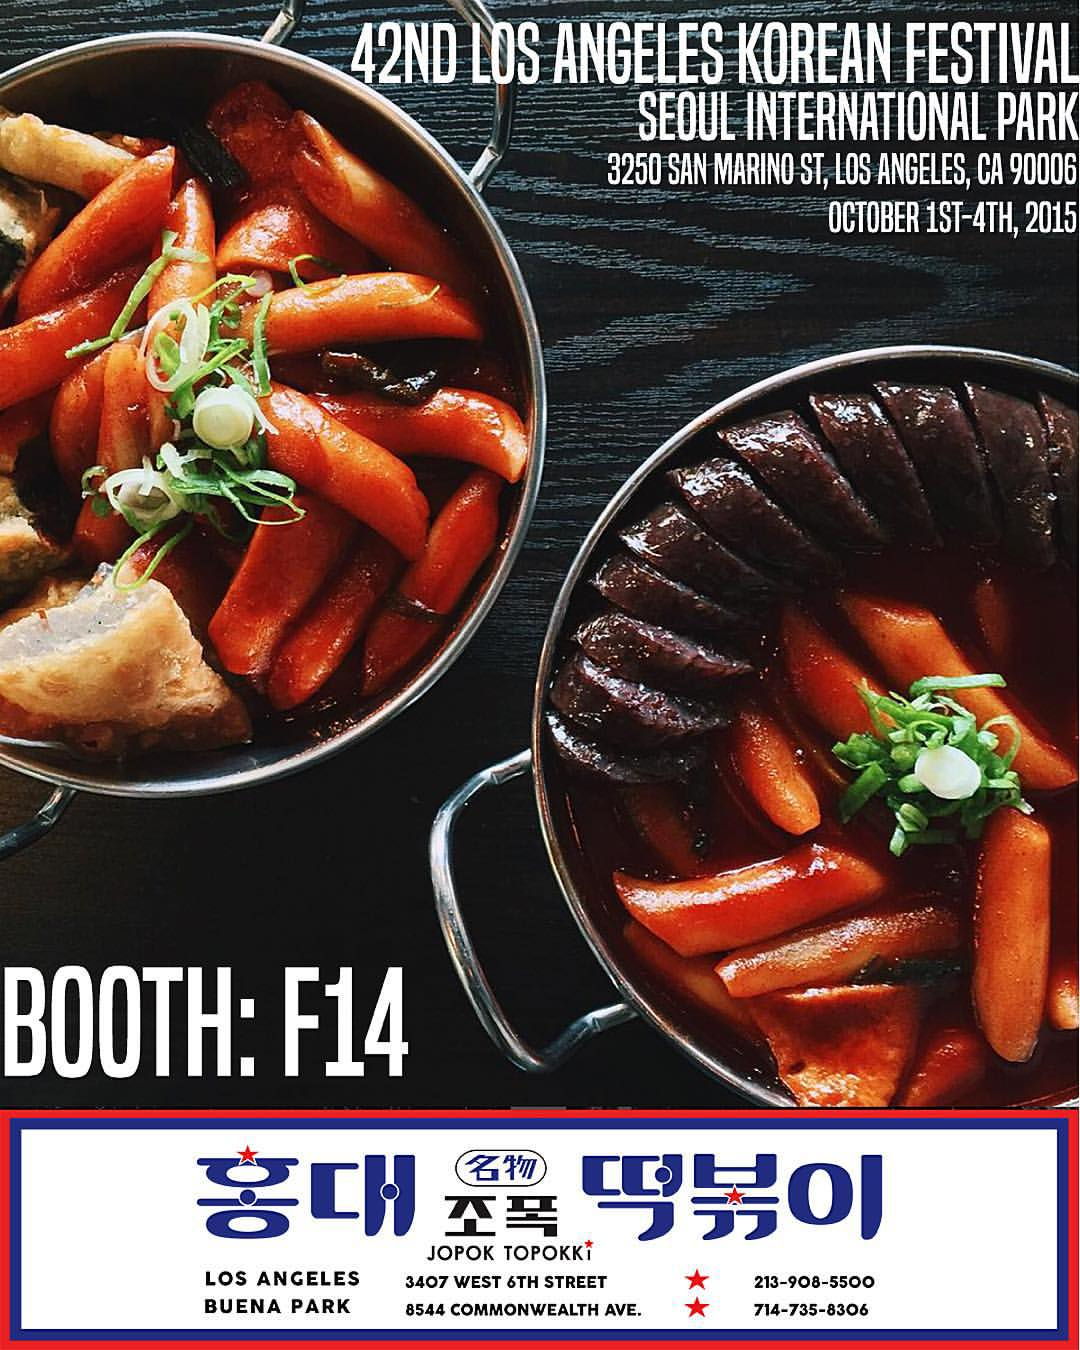 toppoki dubokki los angeles korean festival